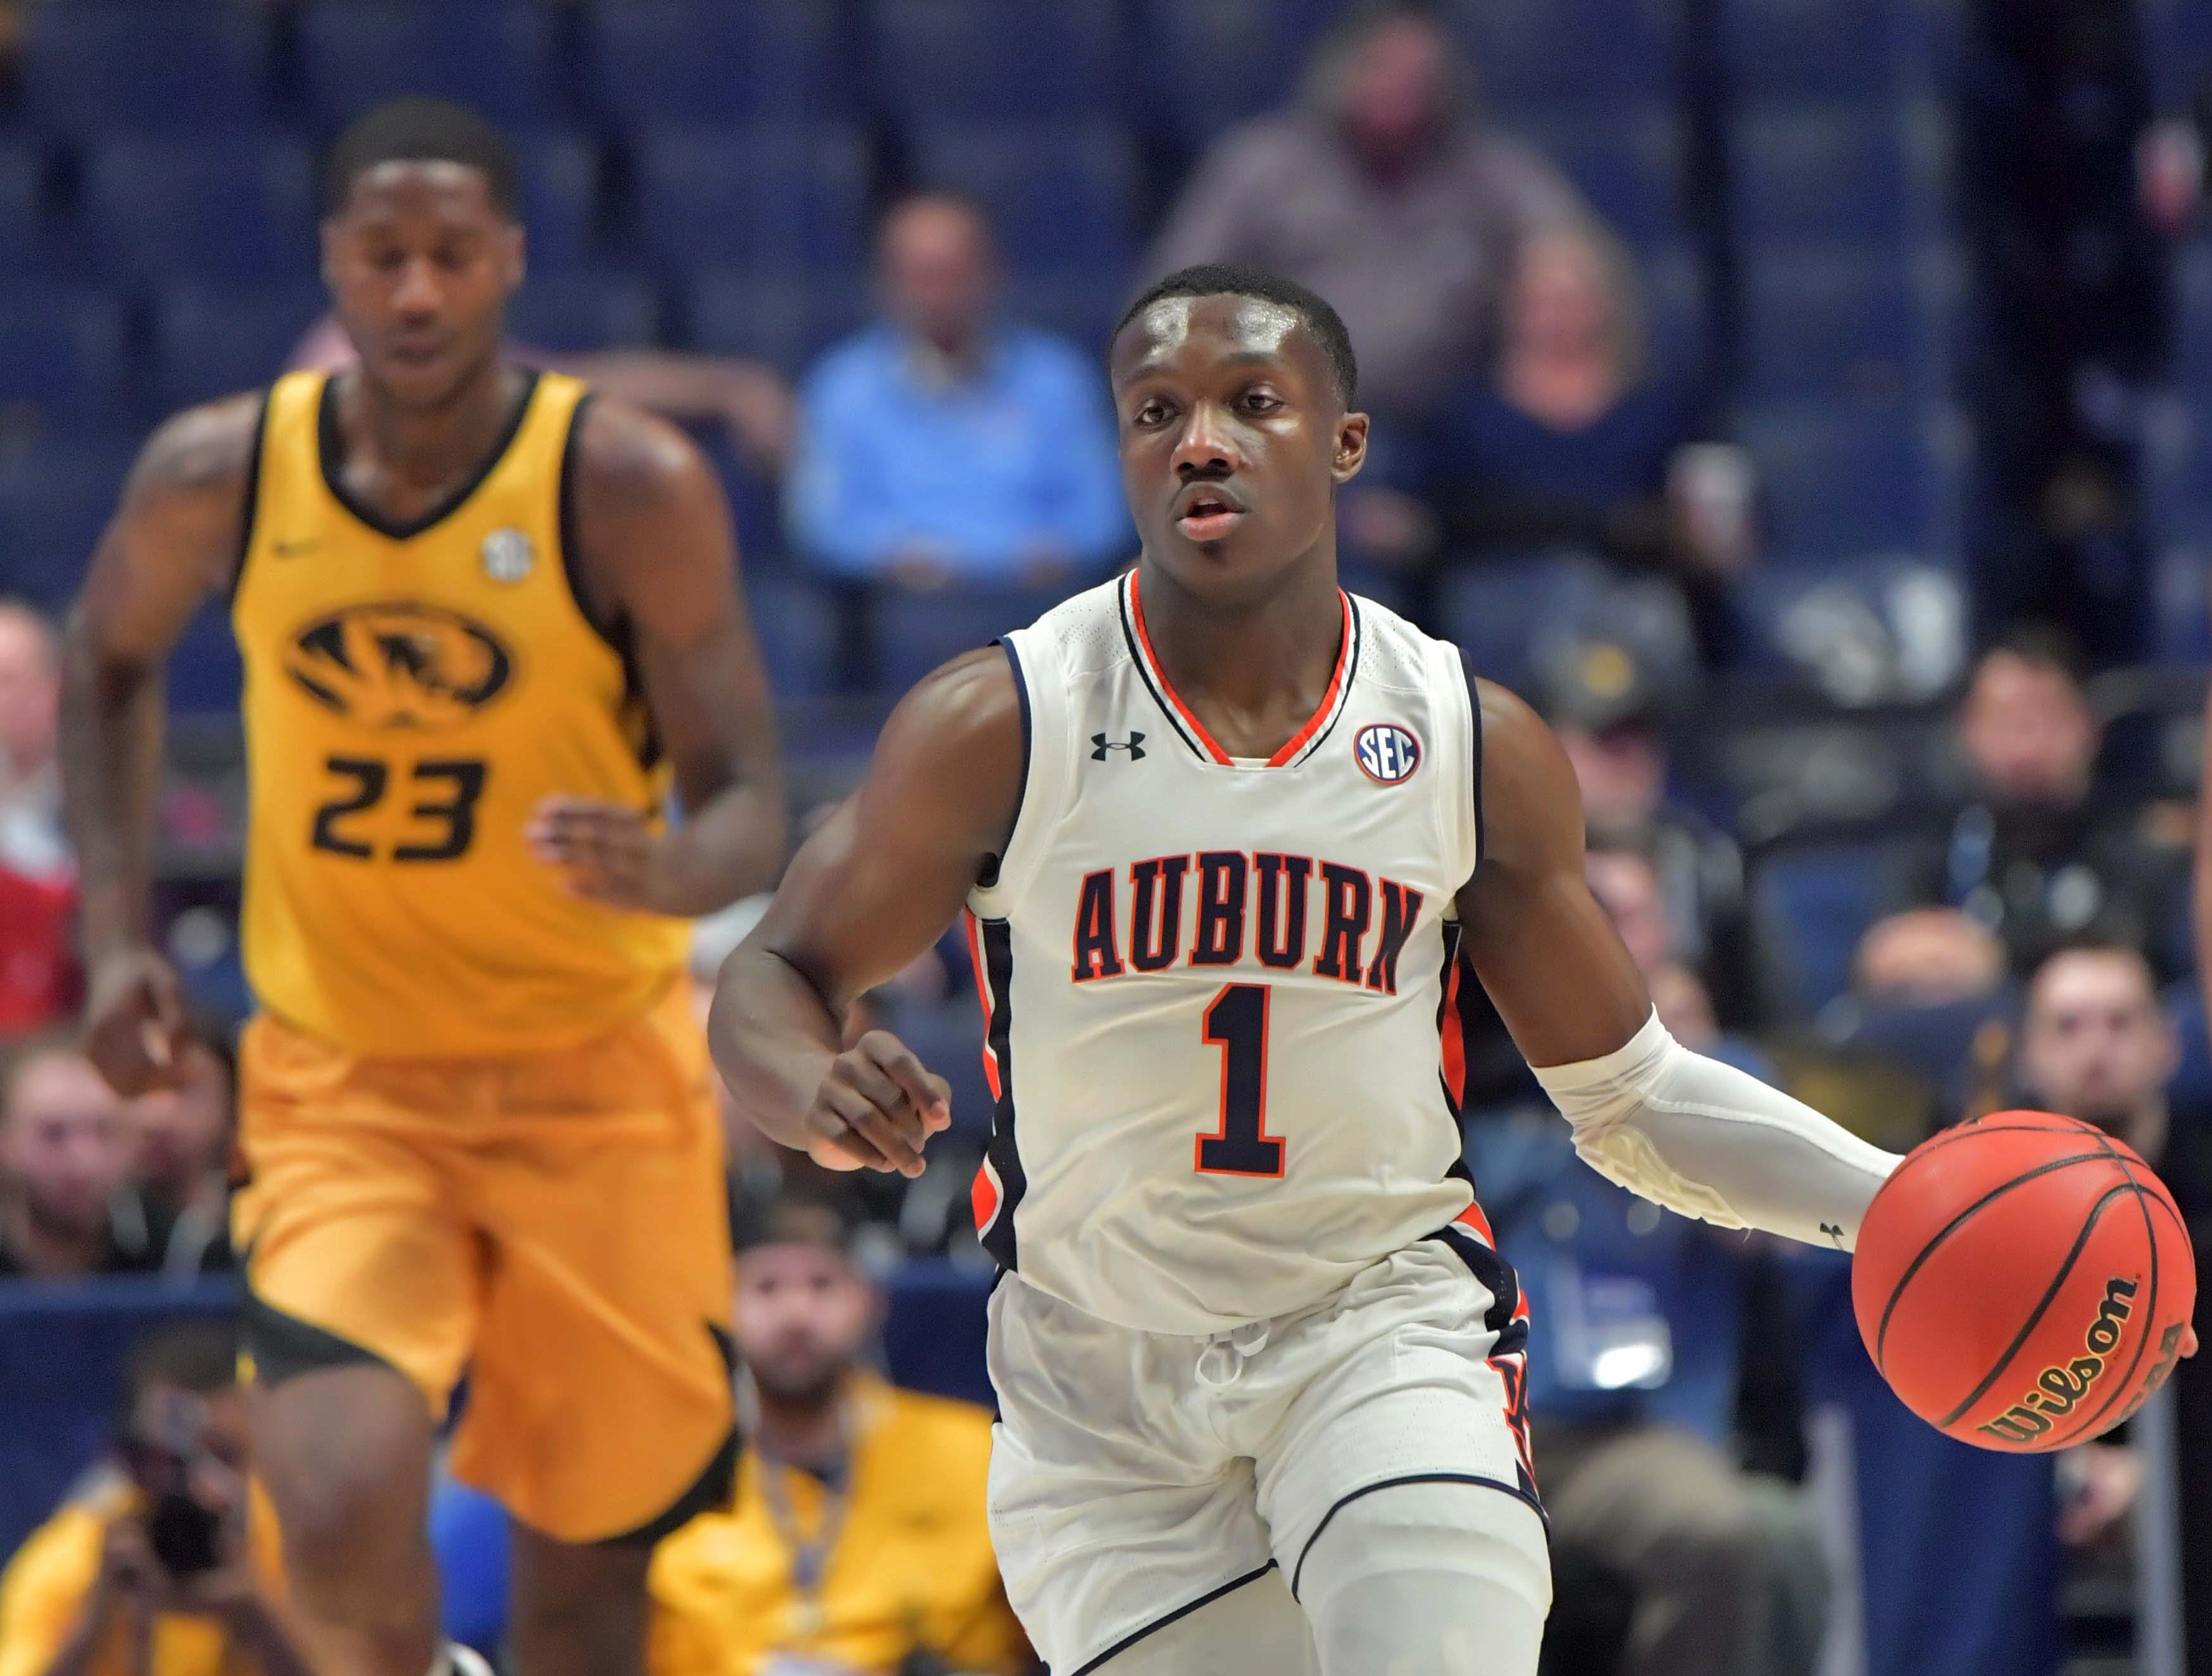 Mar 14, 2019; Nashville, TN, USA; Auburn Tigers guard Jared Harper (1) dribbles the ball against the Missouri Tigers in the SEC conference tournament at Bridgestone Arena. Mandatory Credit: Jim Brown-USA TODAY Sports